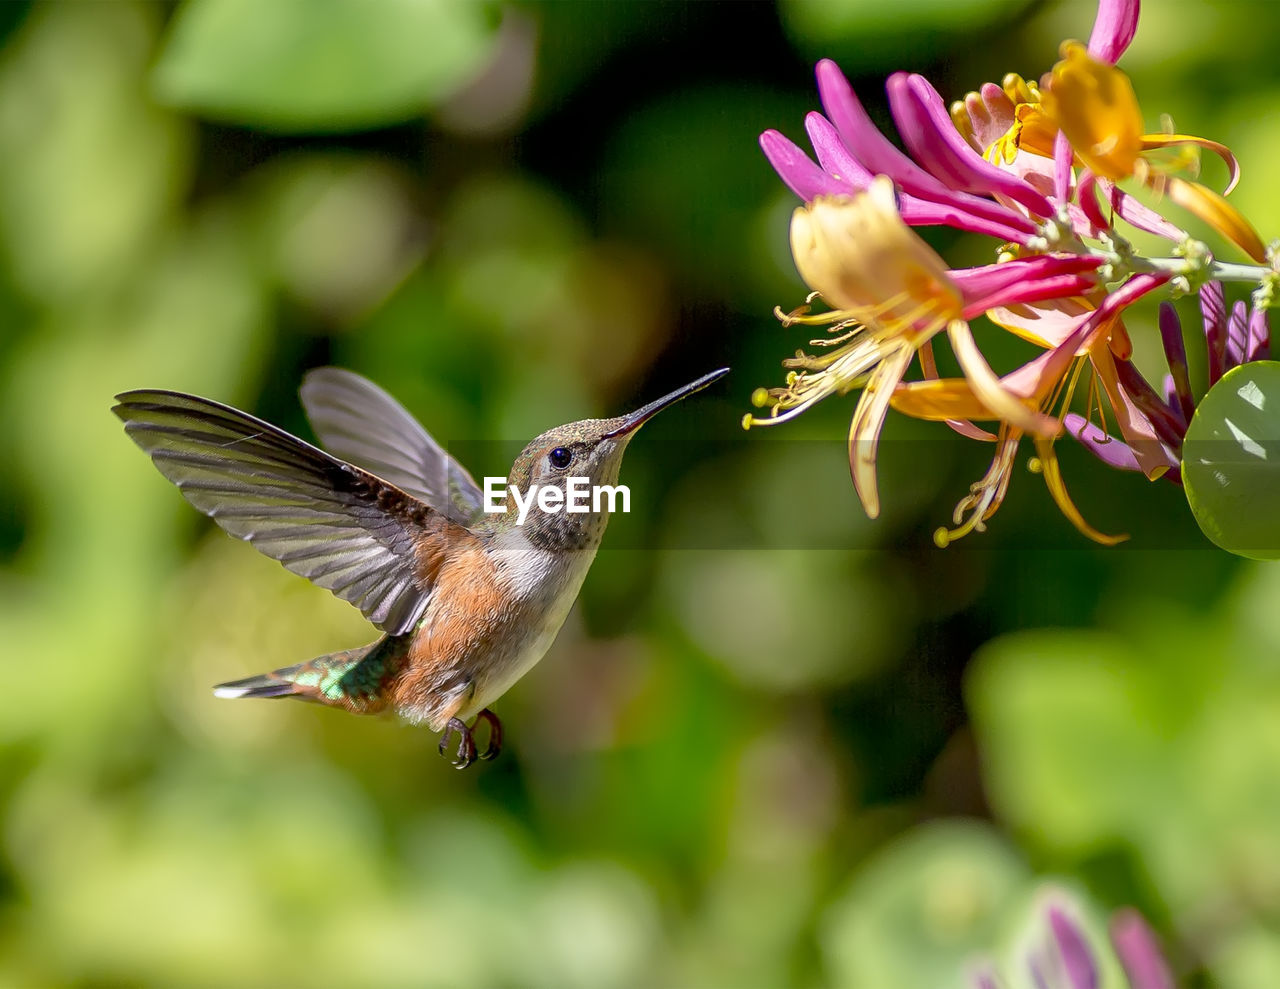 Close-up of hummingbird flying by pink flowers